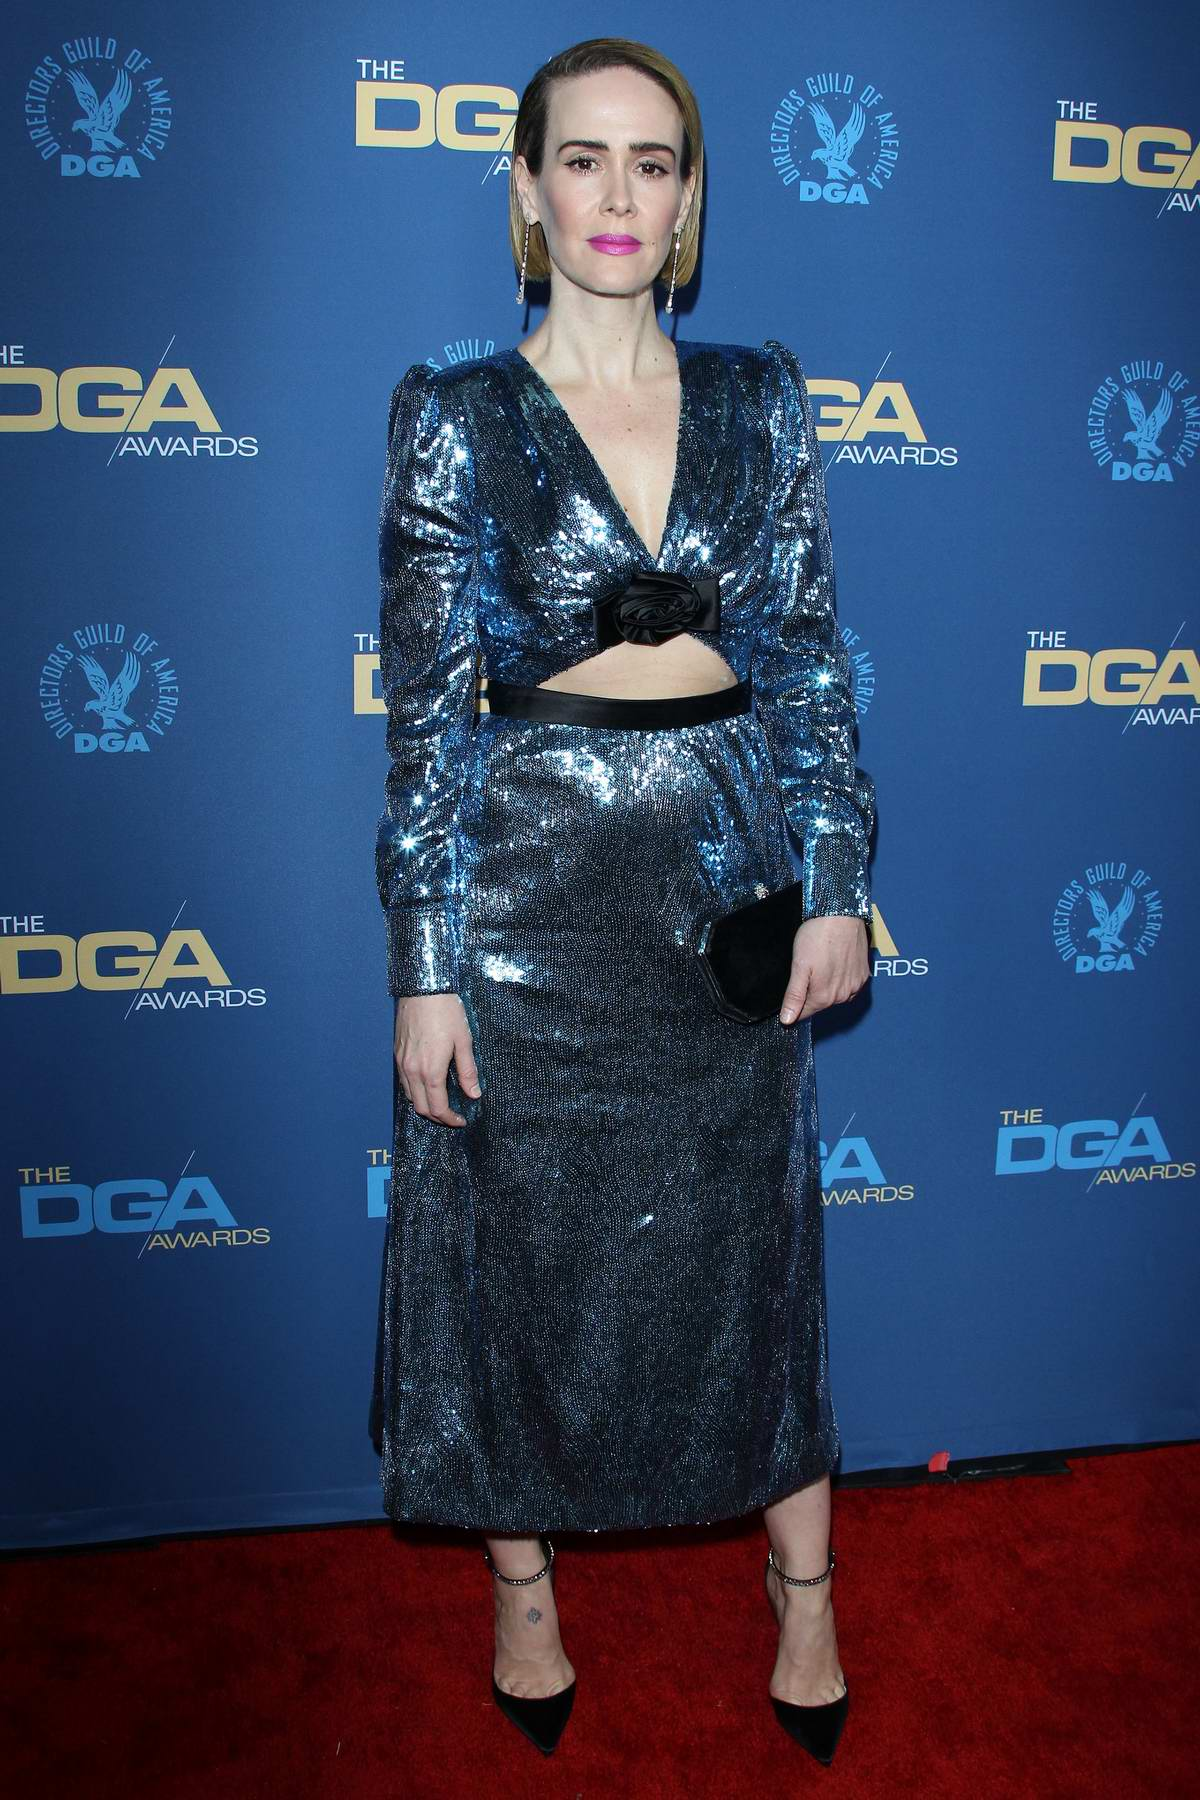 Sarah Paulson attends the 71st Annual Directors Guild Of America Awards in Hollywood, California